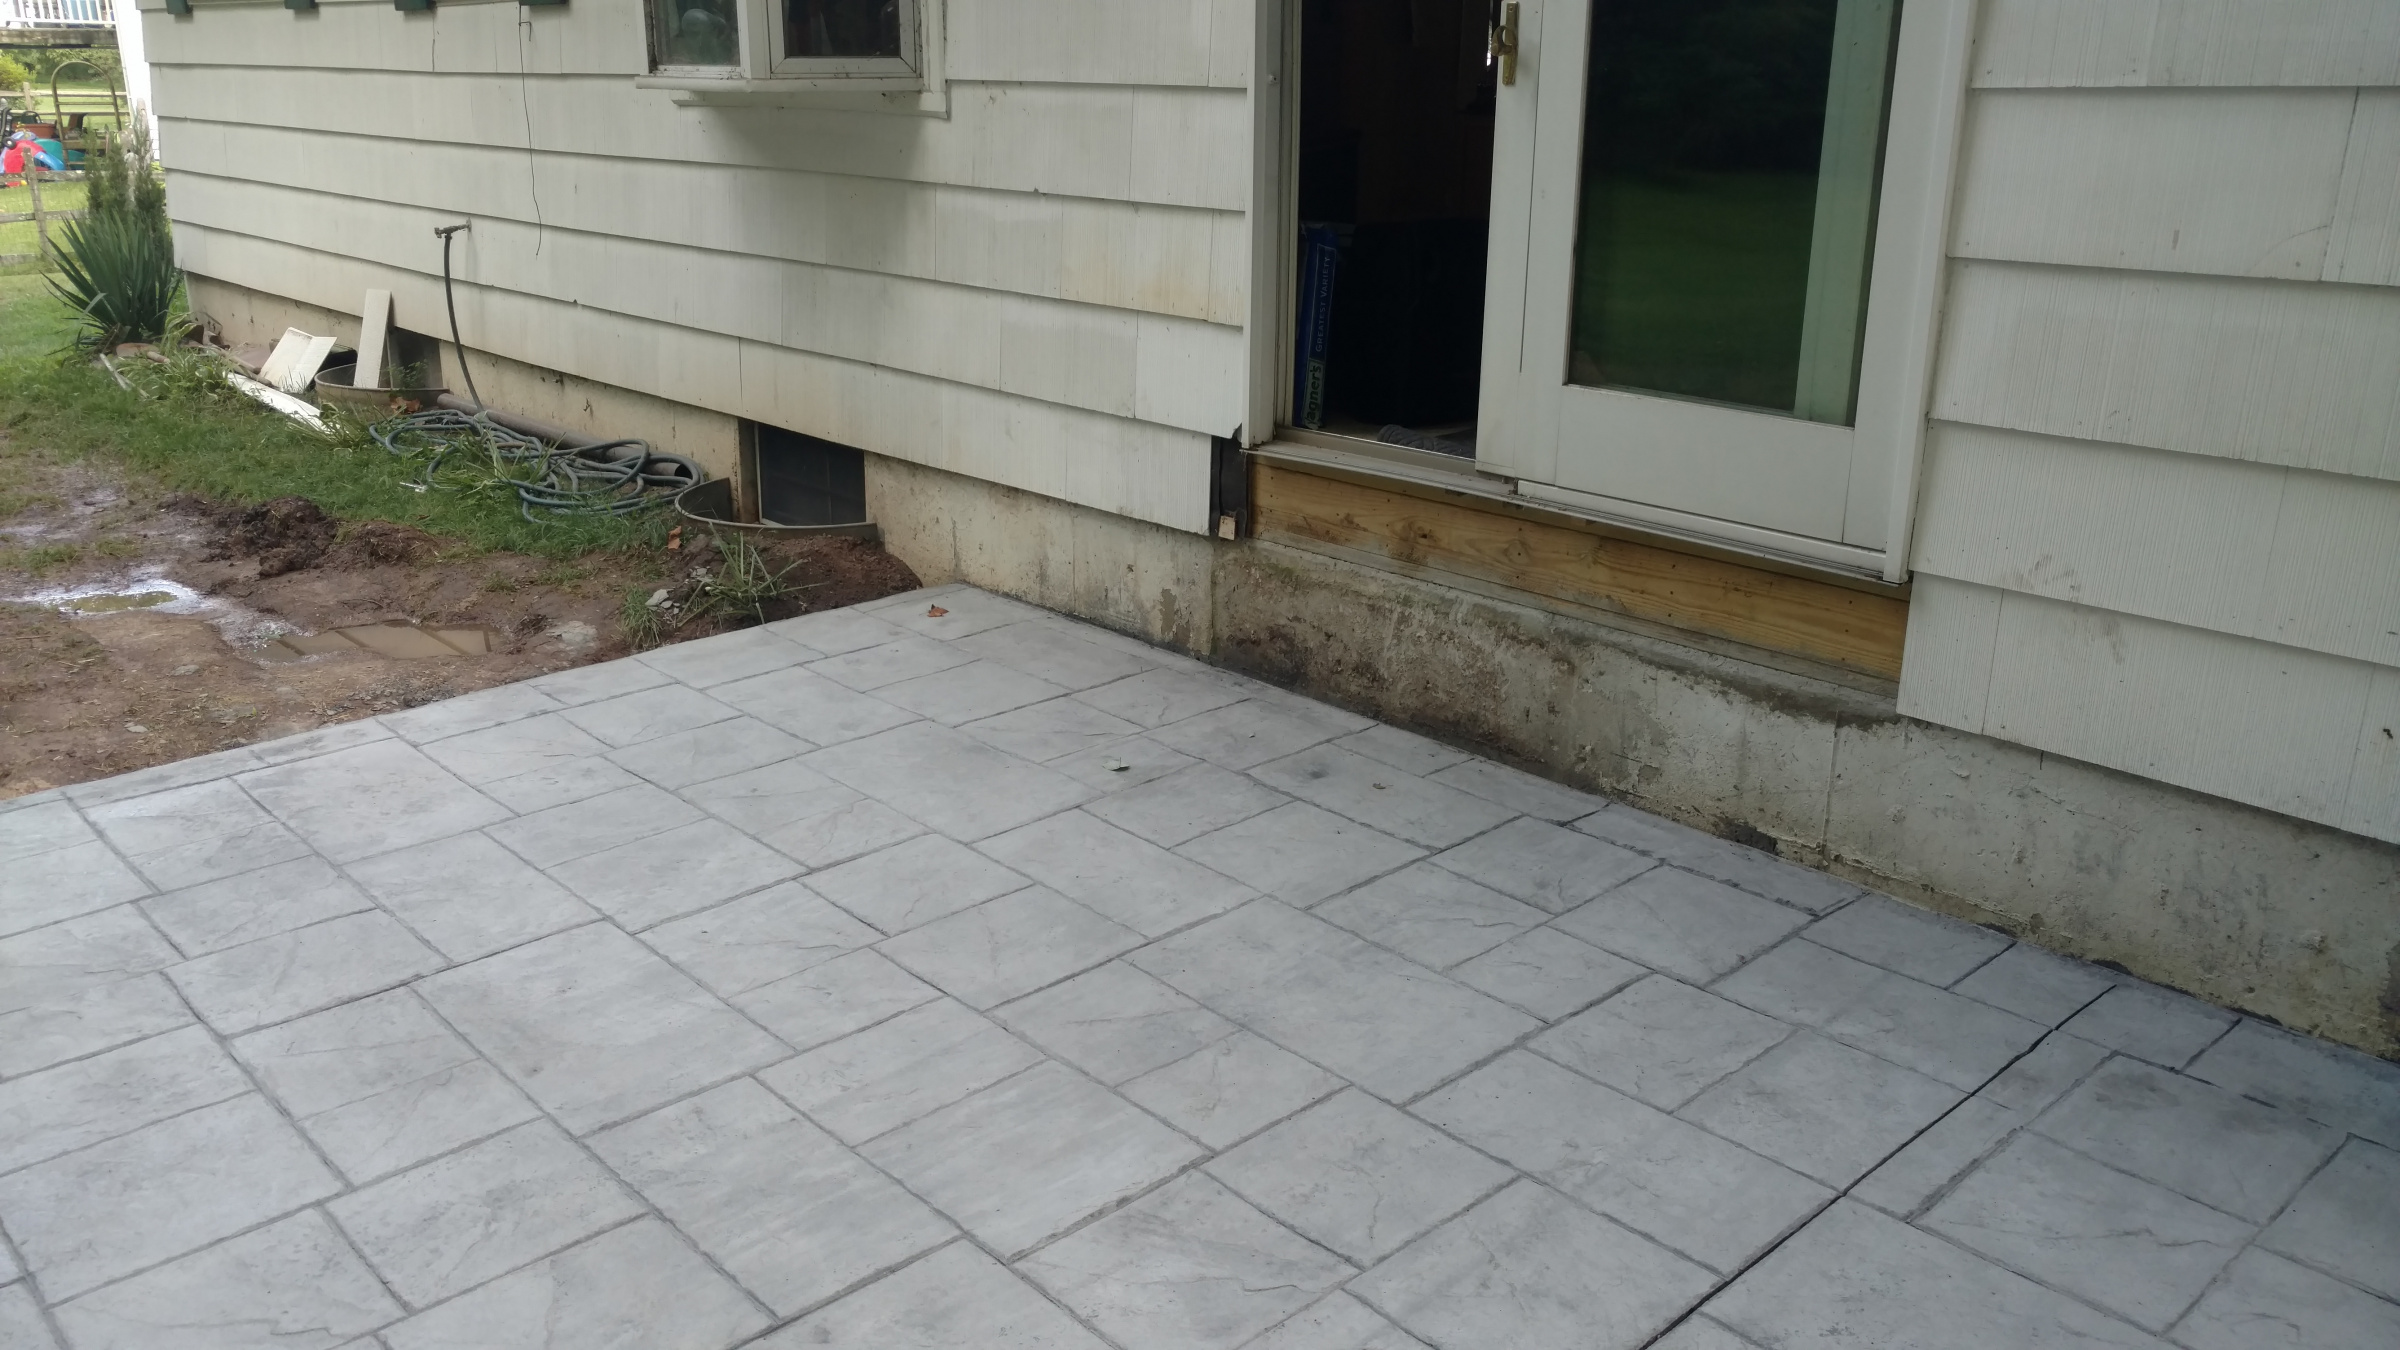 Building Steps Down To Patio Have Questions And Looking For